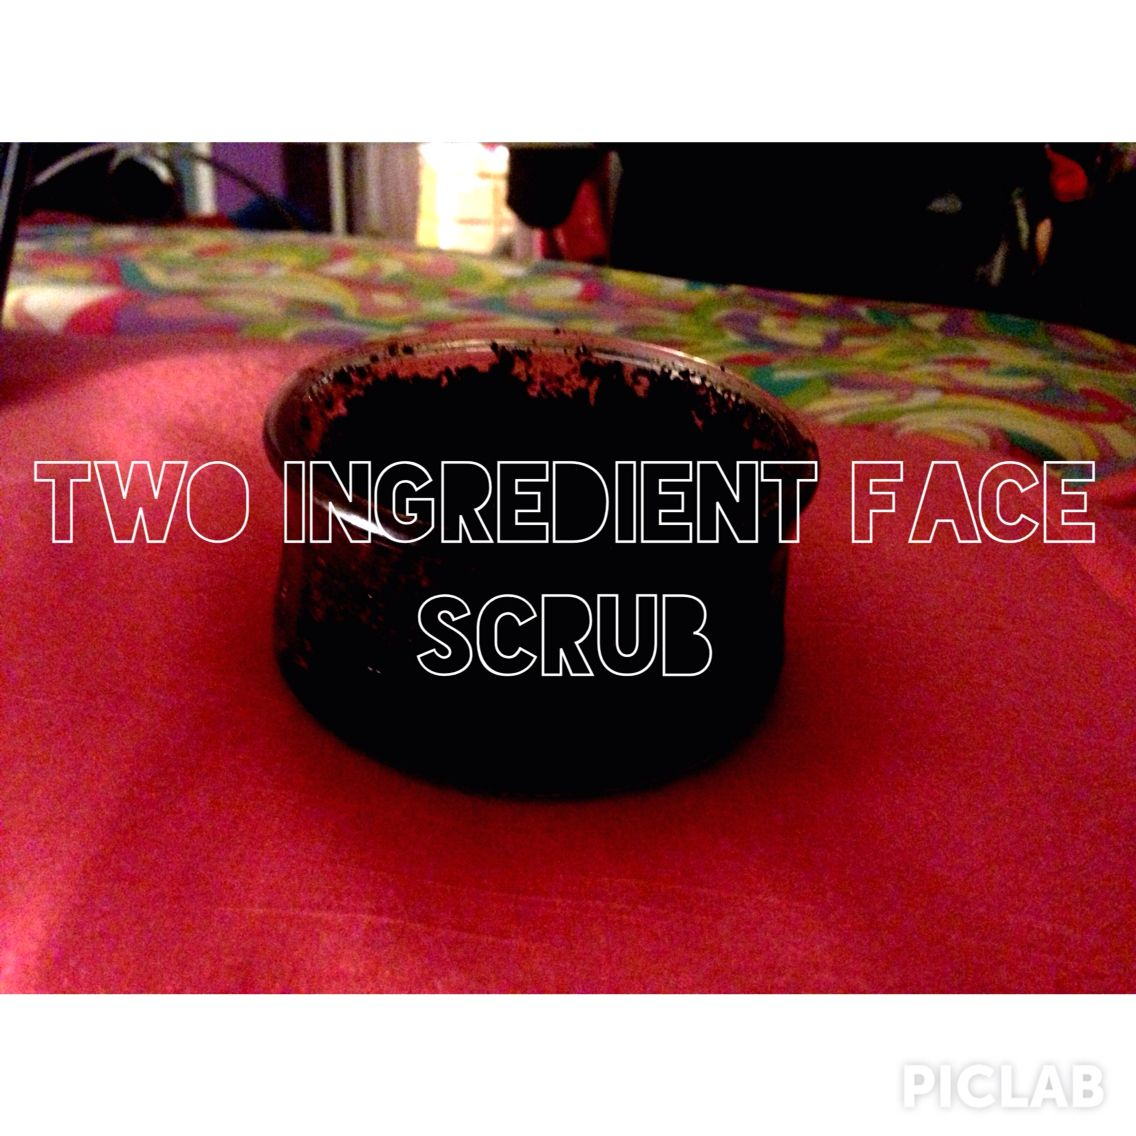 Simple two ingredient face scrub! Just add a little bit of olive oil to some coffee grounds. If you want to mix it up you can add whatever essential oil you want. It makes your skin extremely exfoliated and soft! But it's an intense exfoliation so it's not for everyday use!